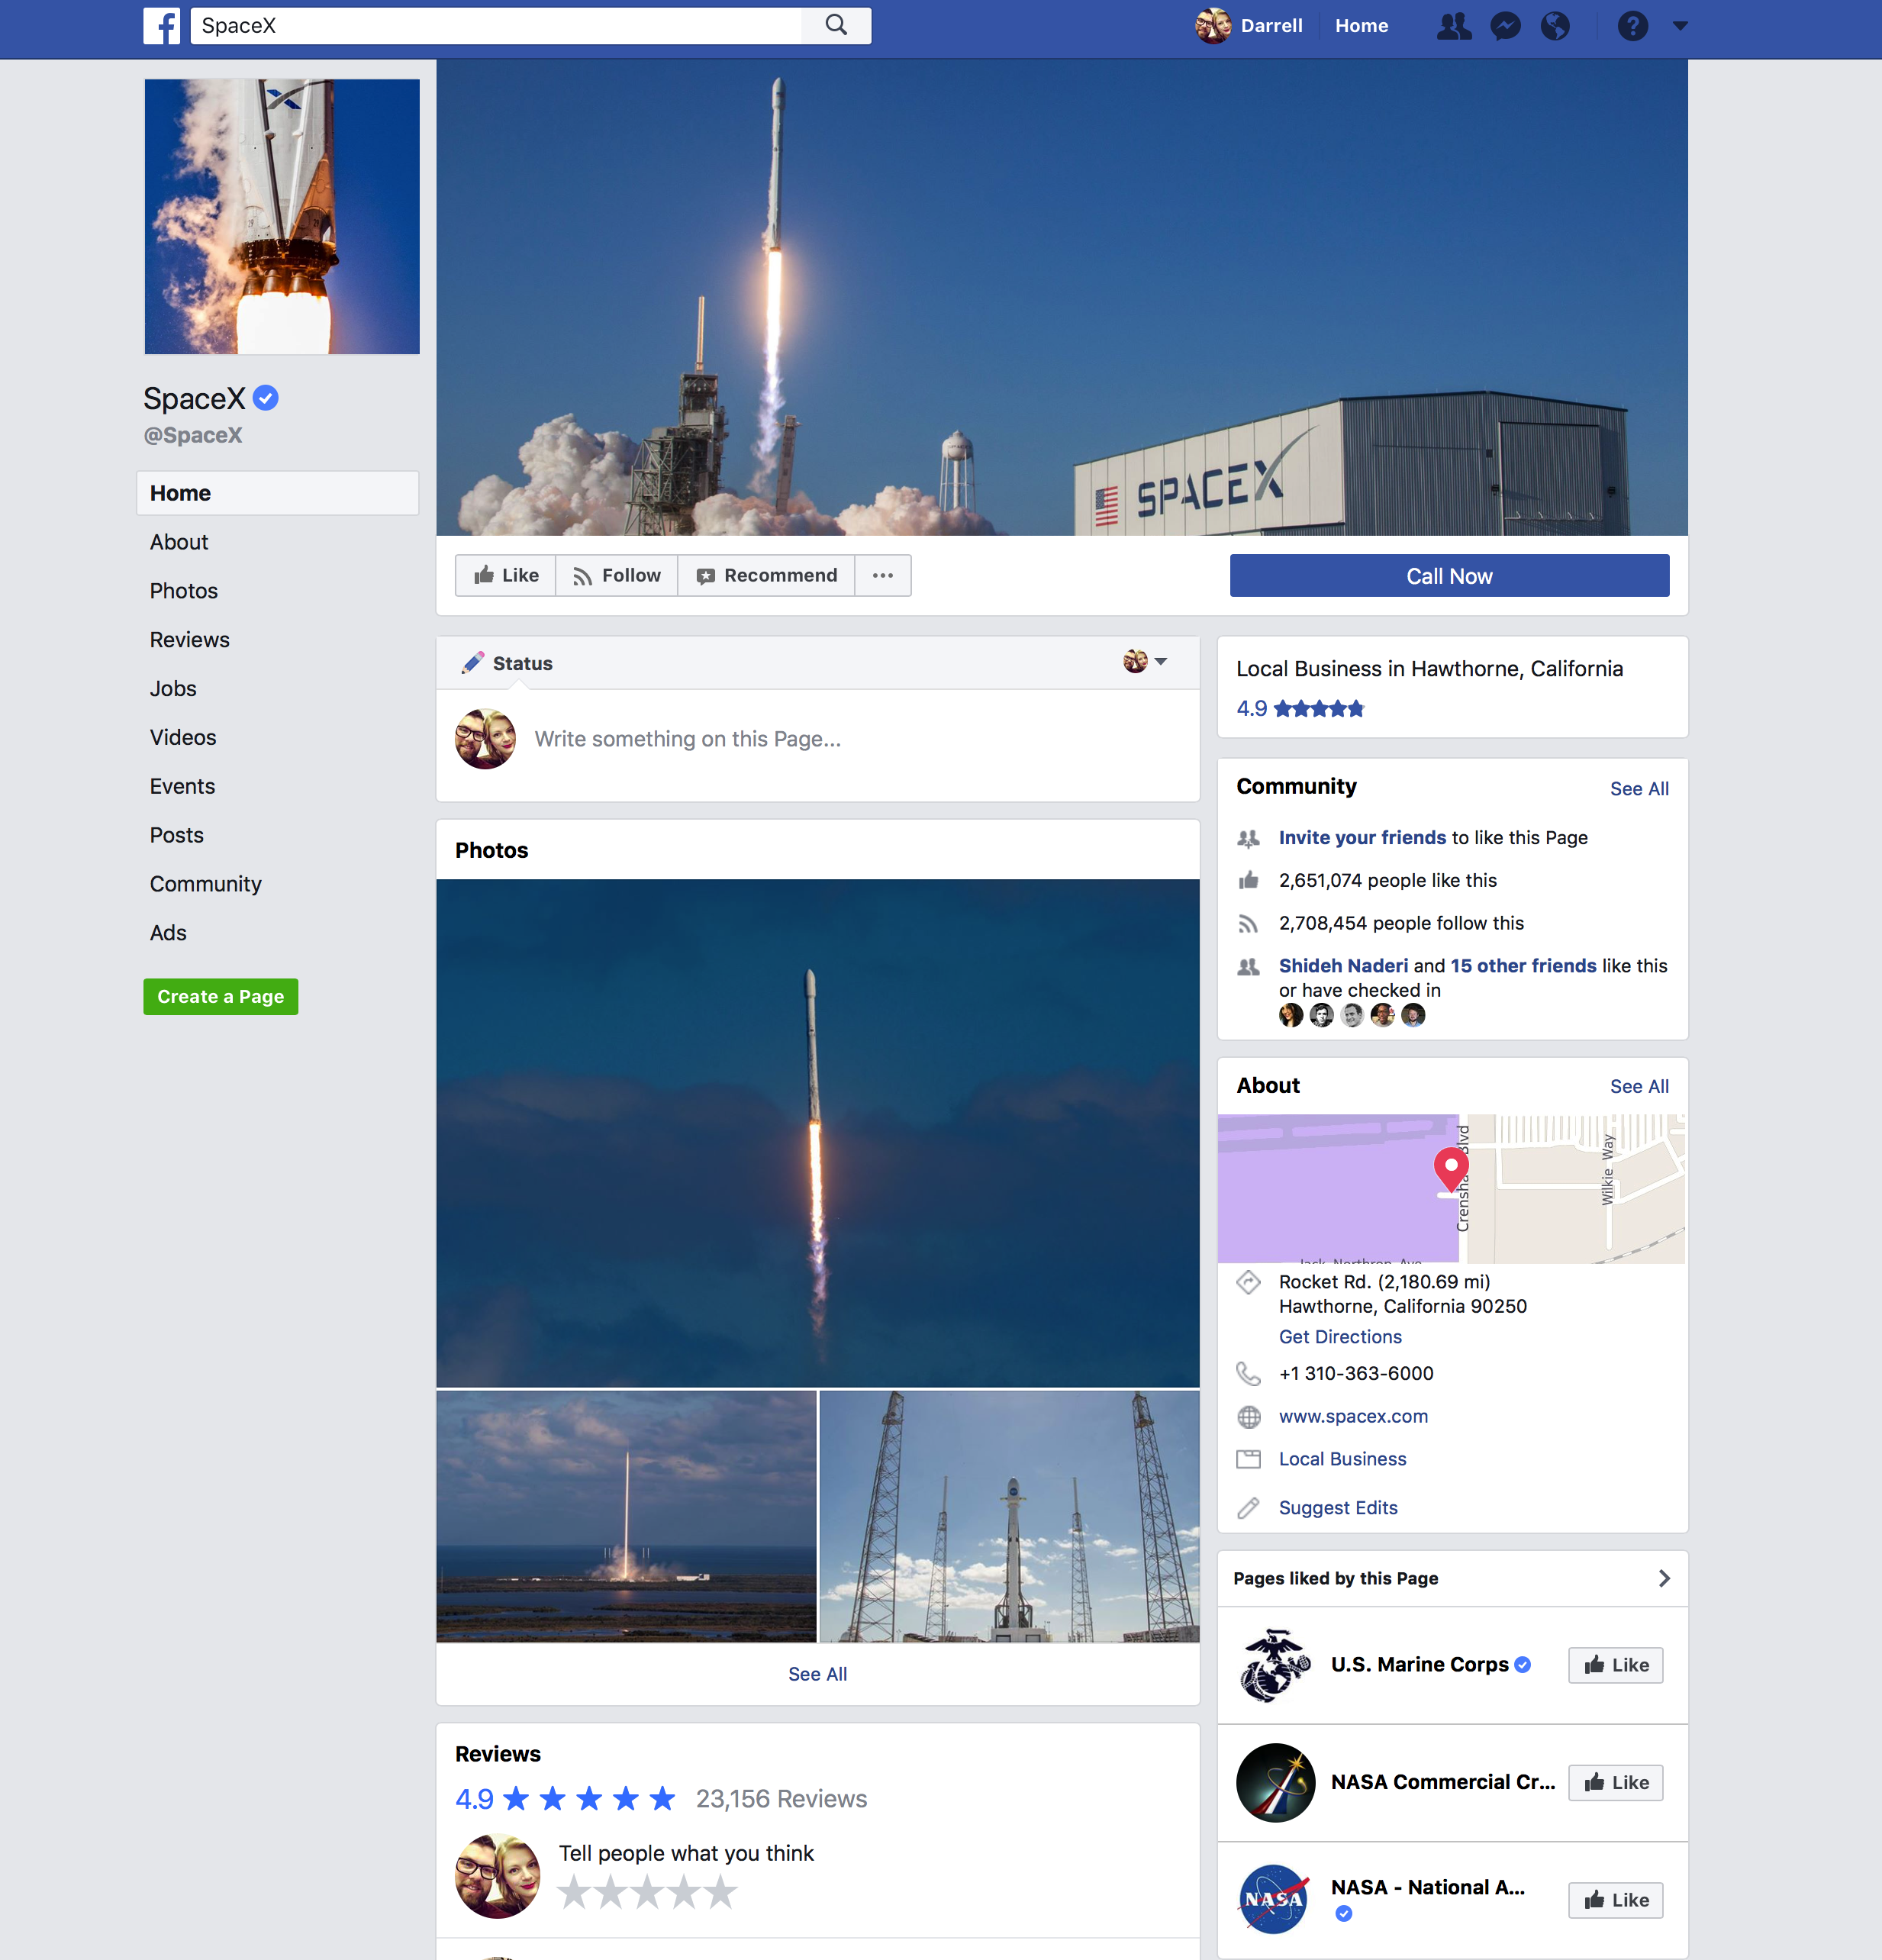 Elon Musk deletes own, SpaceX and Tesla Facebook pages after #deletefacebook